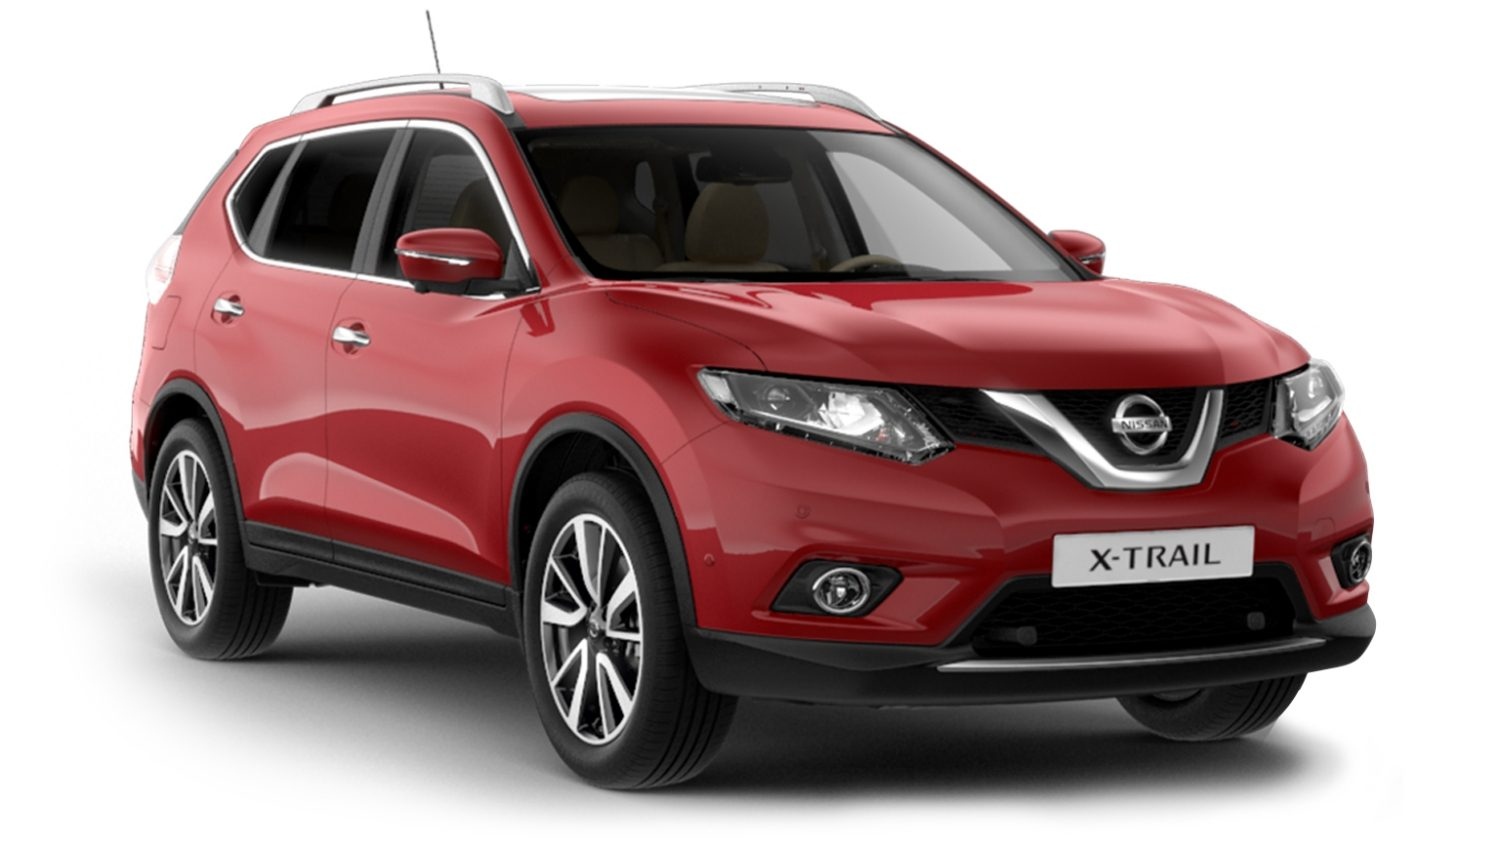 nissan x trail versions specifications nissan oman. Black Bedroom Furniture Sets. Home Design Ideas